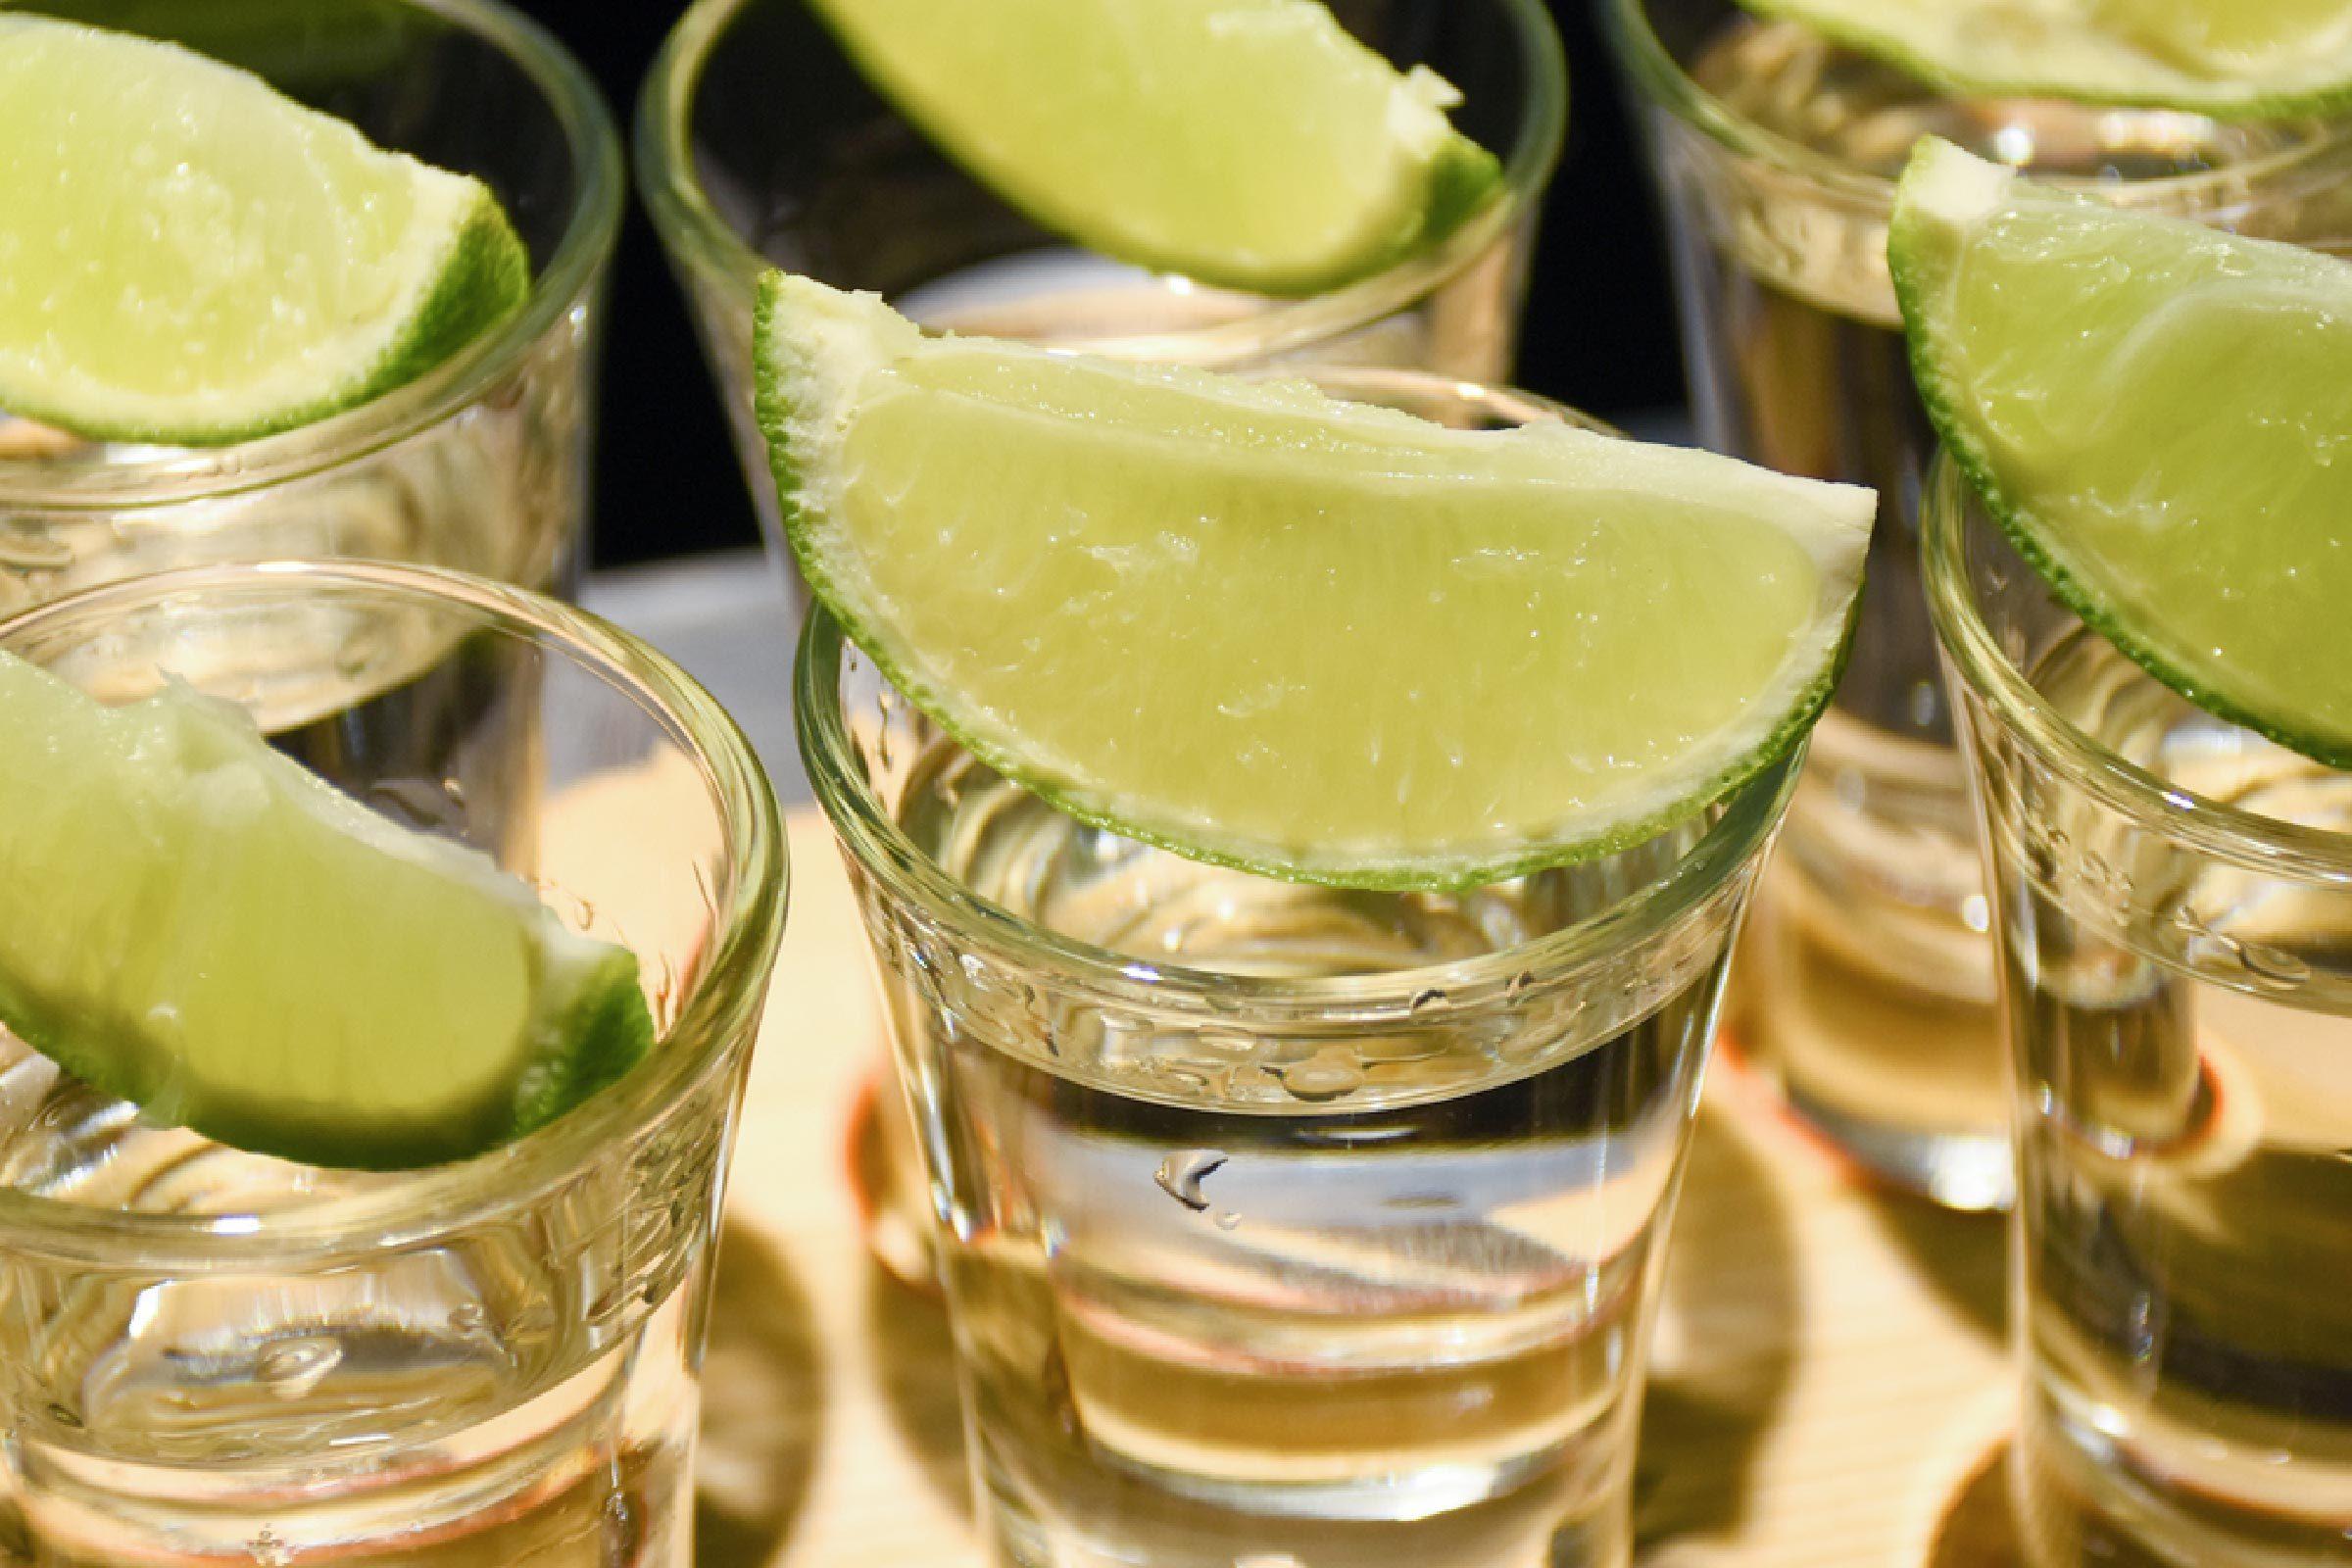 low-carb diet mistakes | Tequila and lime slice